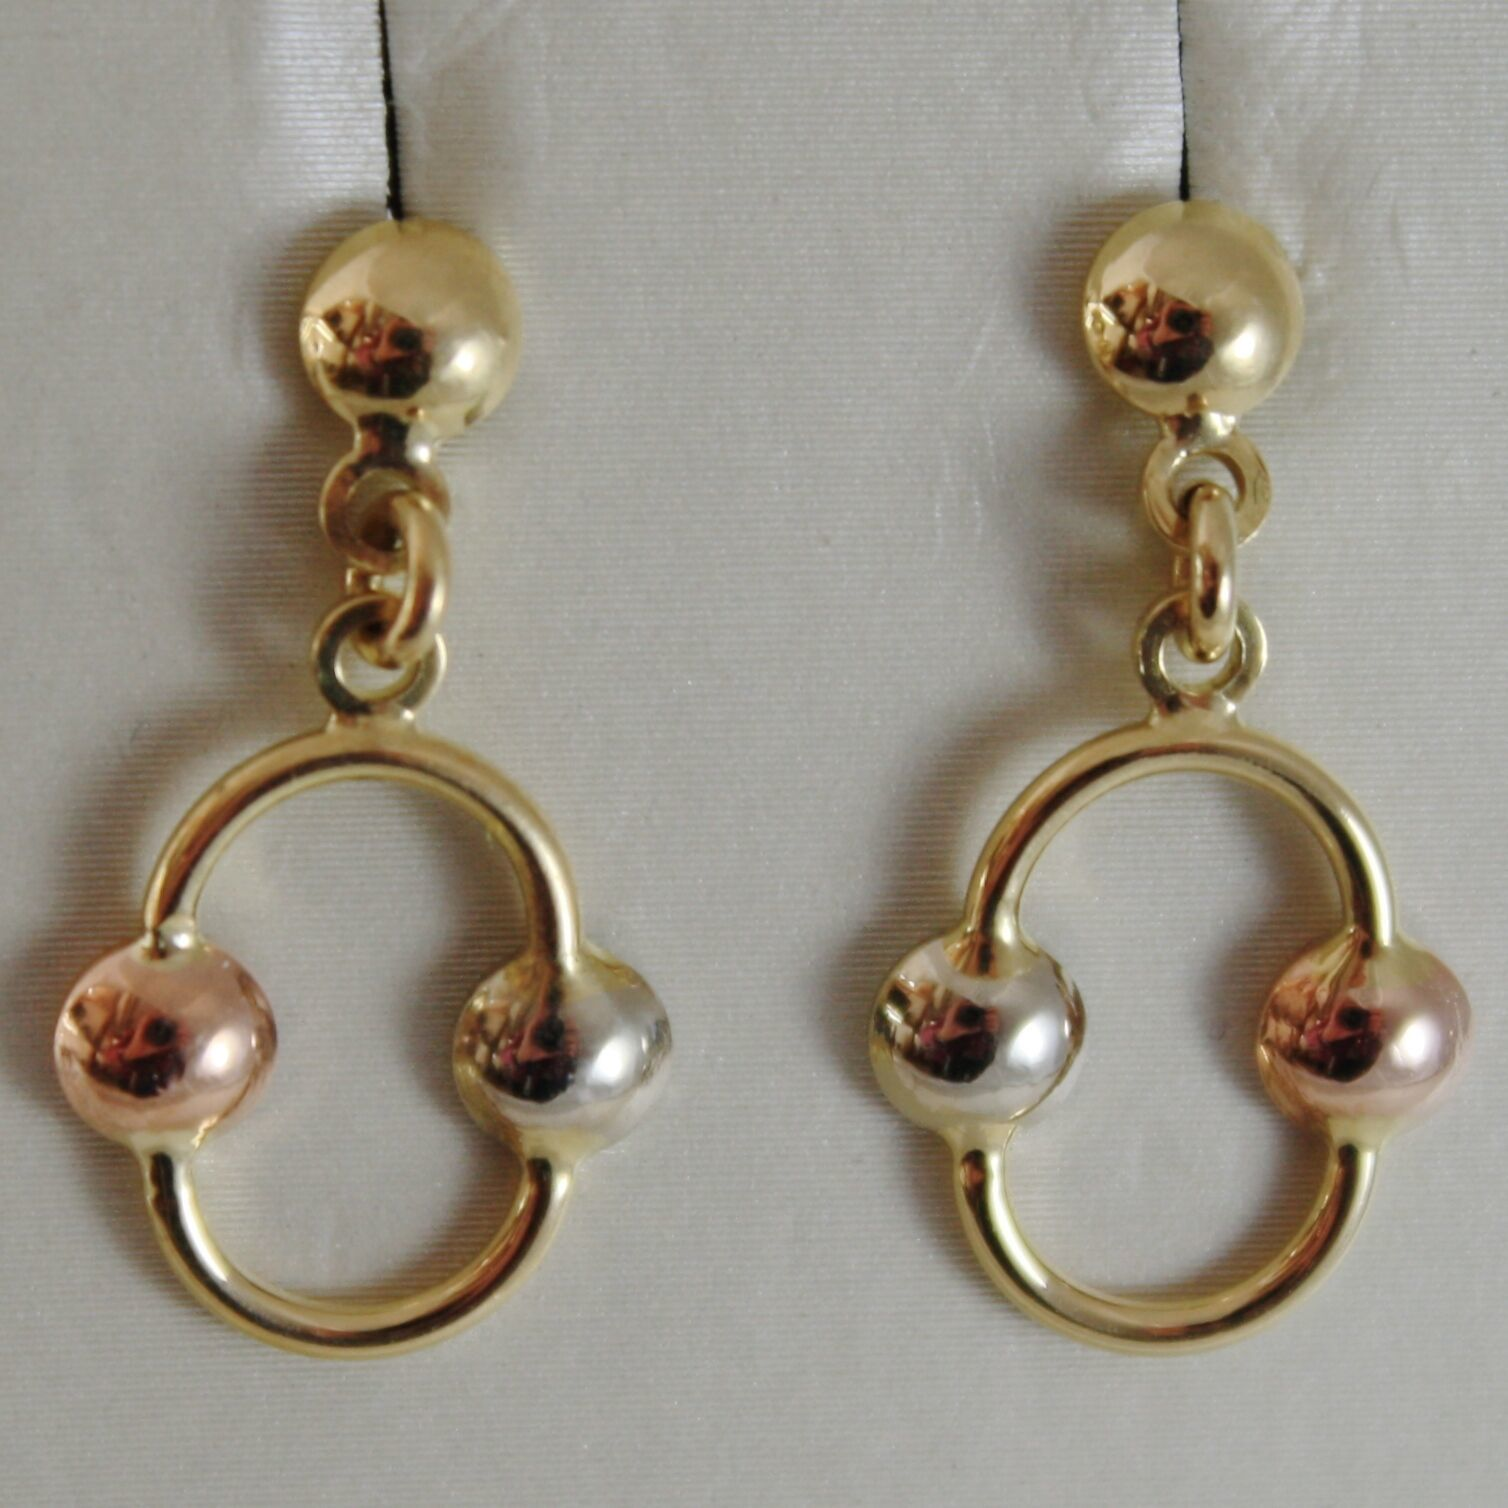 18K YELLOW, ROSE, WHITE GOLD PENDANT OVAL EARRINGS, BALLS BRIGHT MADE IN ITALY